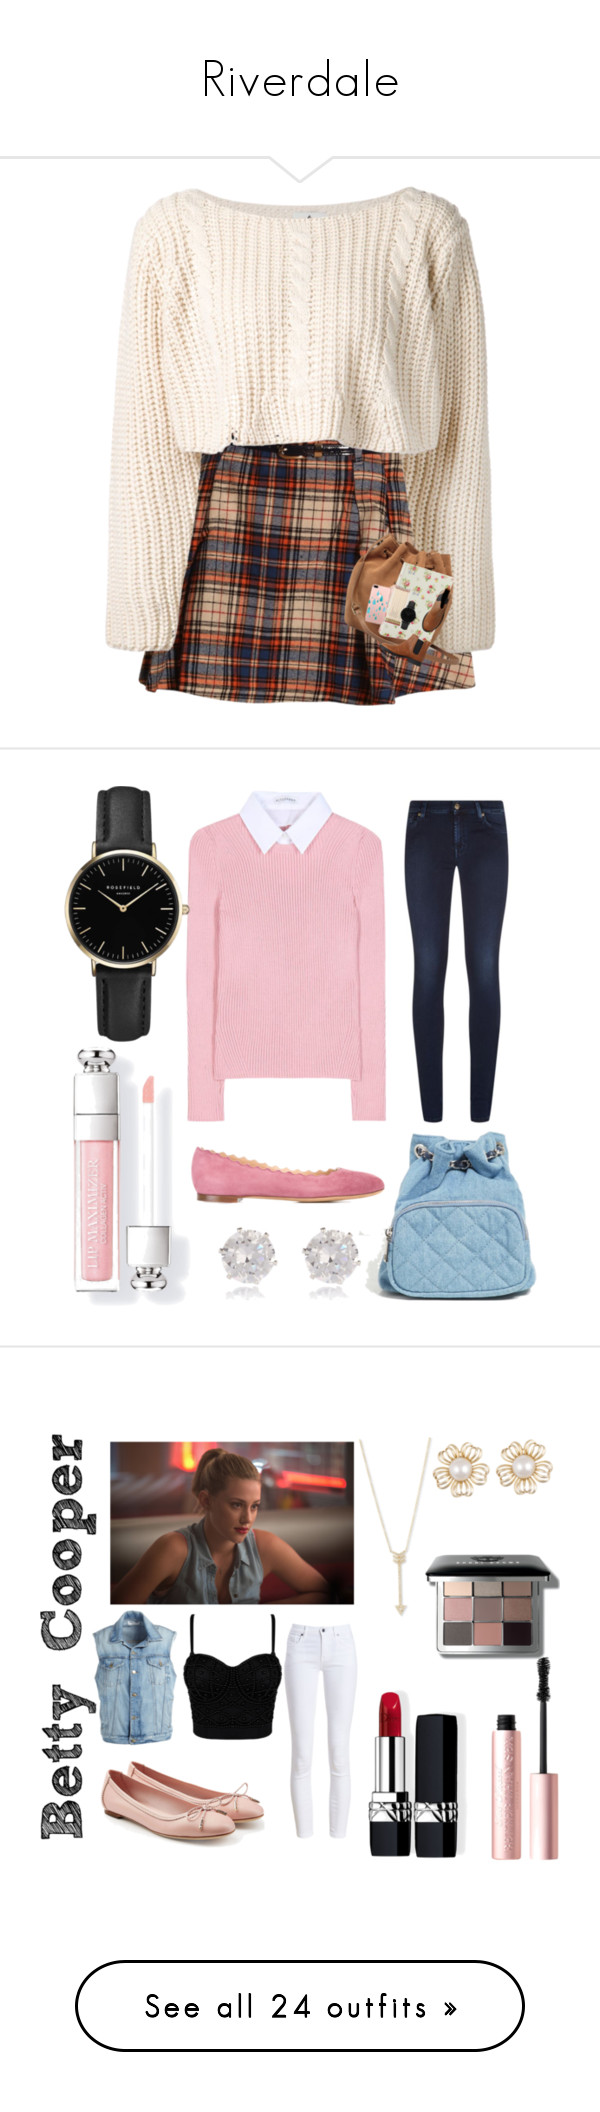 """""""Riverdale"""" by princesselune97 ❤ liked on Polyvore featuring UNIF, UGG, Go Stationery, Monki, Kate Spade, CLUSE, 7 For All Mankind, Altuzarra, Chloé and Forever 21"""